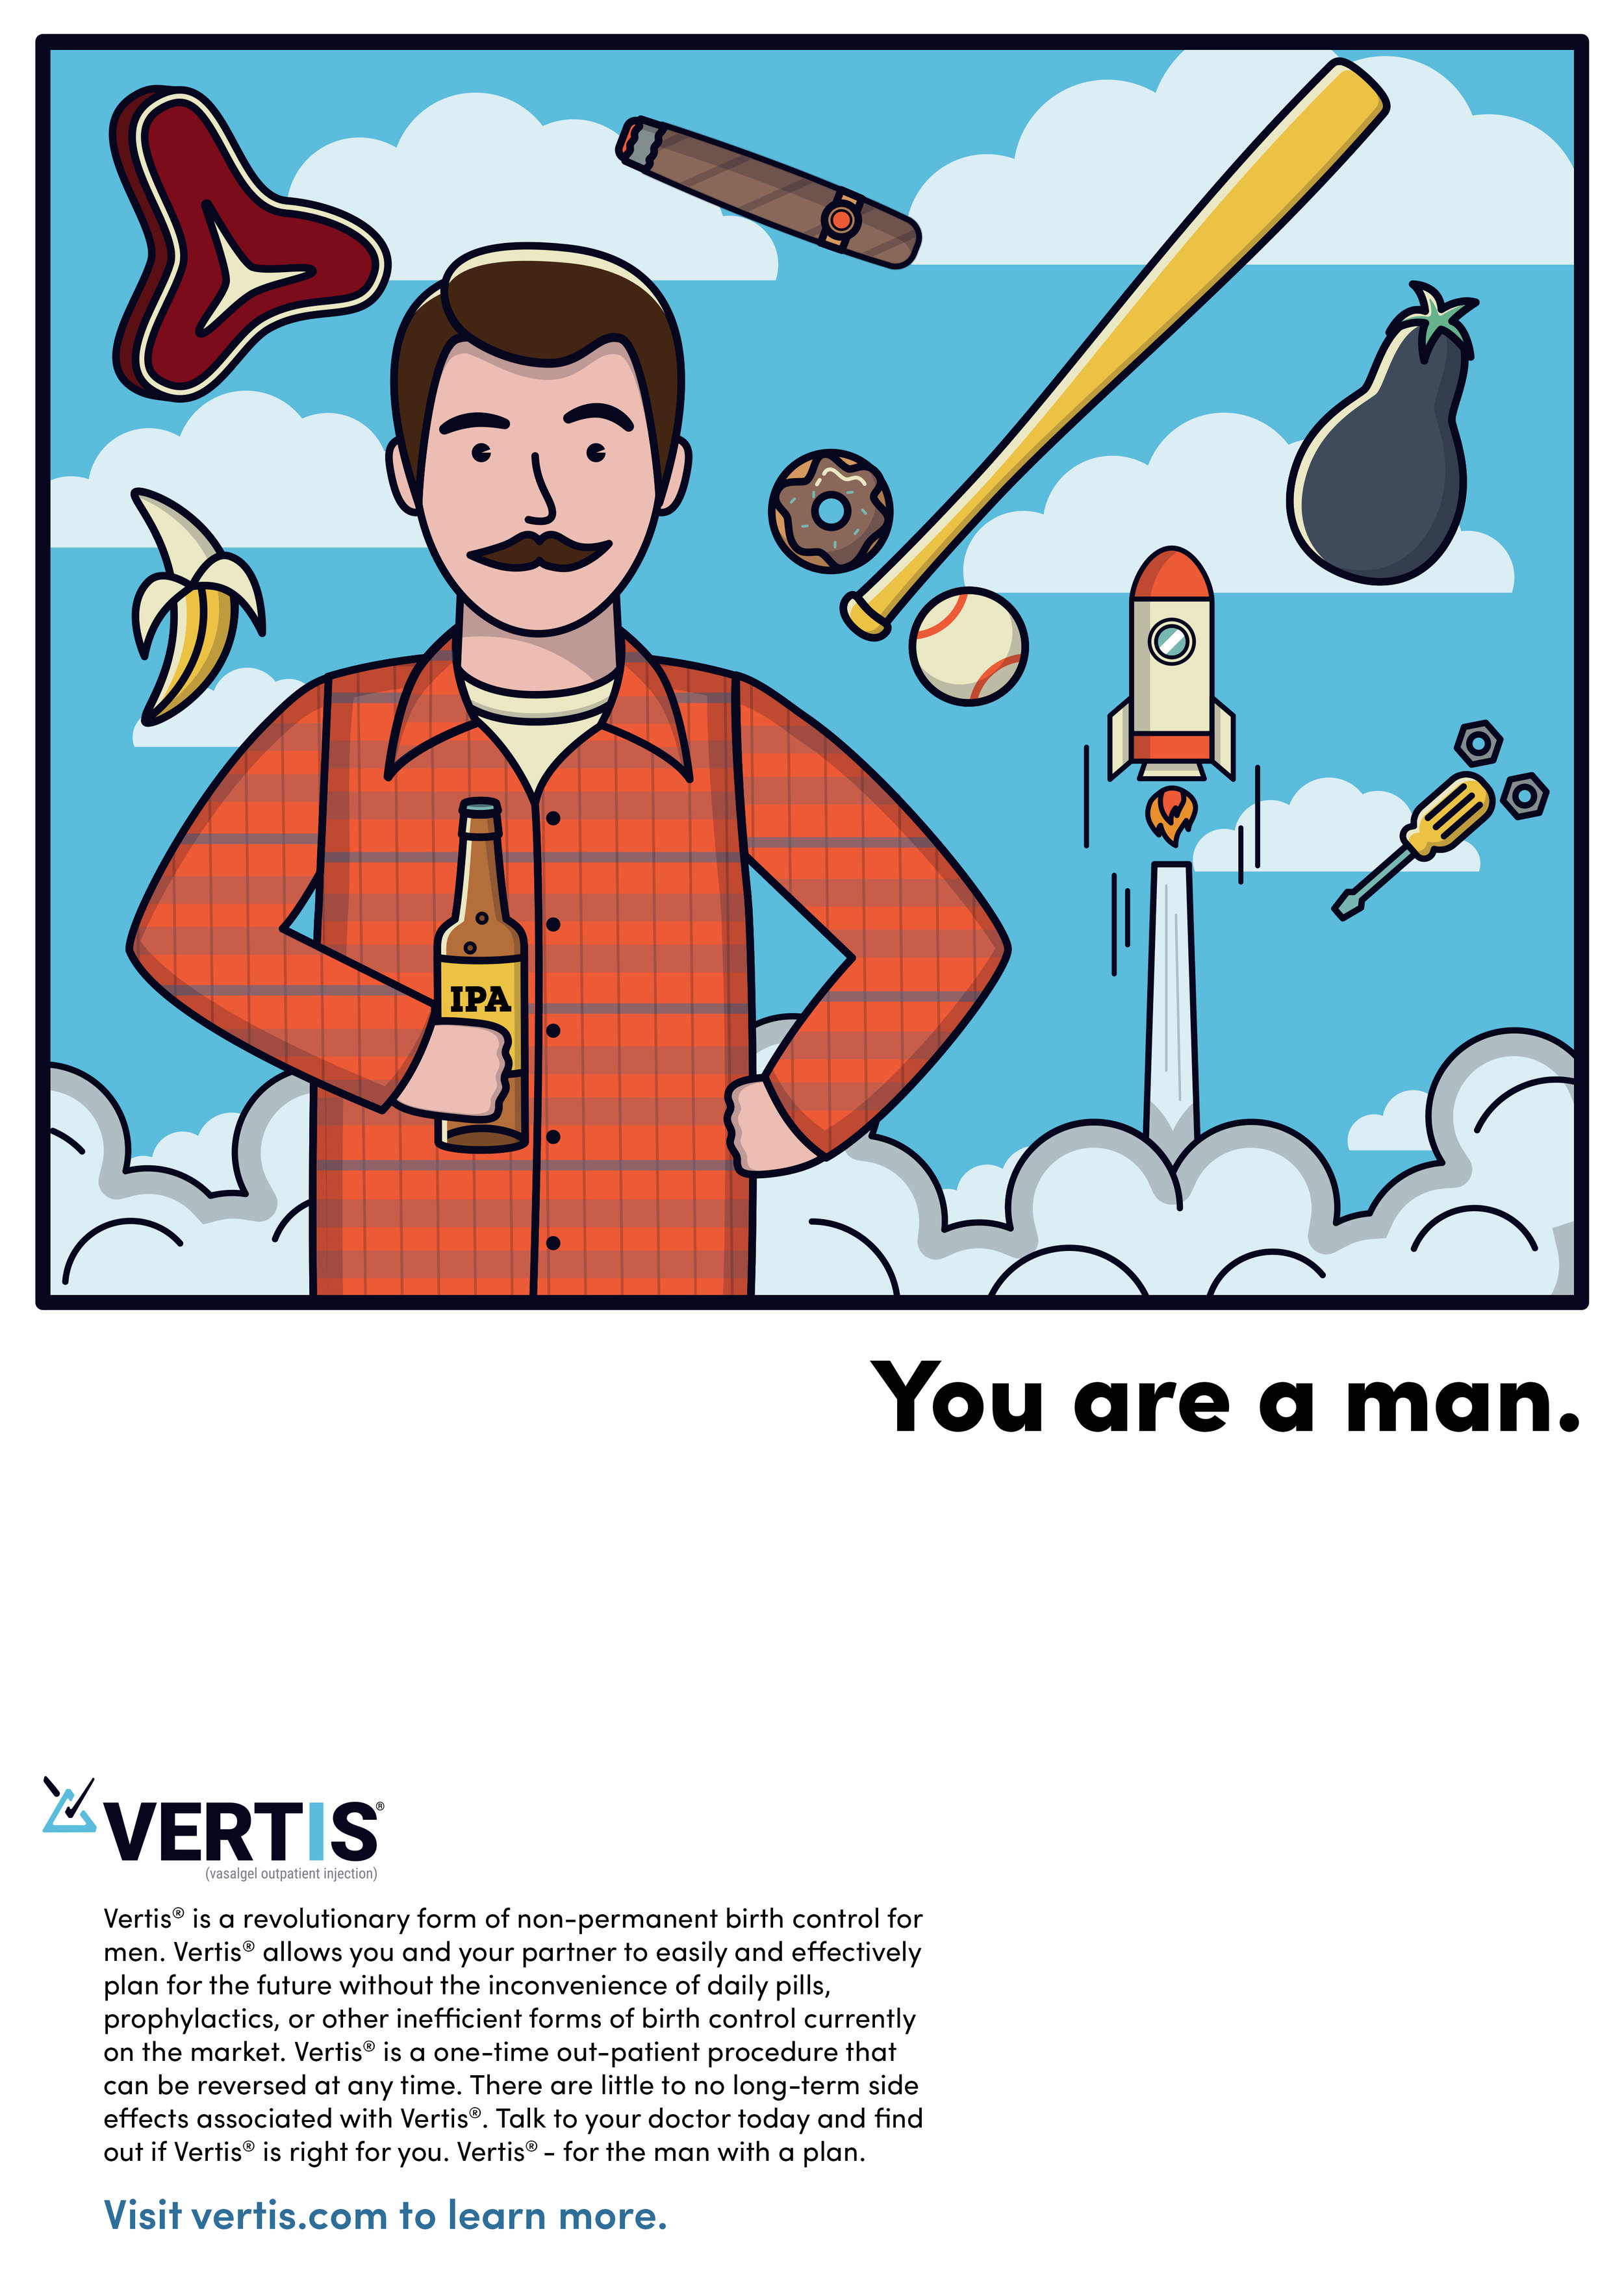 """The """"You Are a Man"""" campaign is a satirical take on masculinity in the vein of cultural icons like Ron Swanson. At the same time, it aims to be empowering and aspirational. It encourages men to take control of their reproductive health, and to examine the role that they play in family planning. By inspiring them to be accountable for birth control in their relationships (a role traditionally held by women), it turns the """"manly"""" stereotype on its head. Essentially, the message is that it is """"manly""""* to share the responsibility of family planning with your partner. The campaign uses illustration to convey humor and approachability, and it uses subliminal penises to be subversive and eye-catching. The imagery is balanced with bold headlines and simple, informative copy about Vertis."""